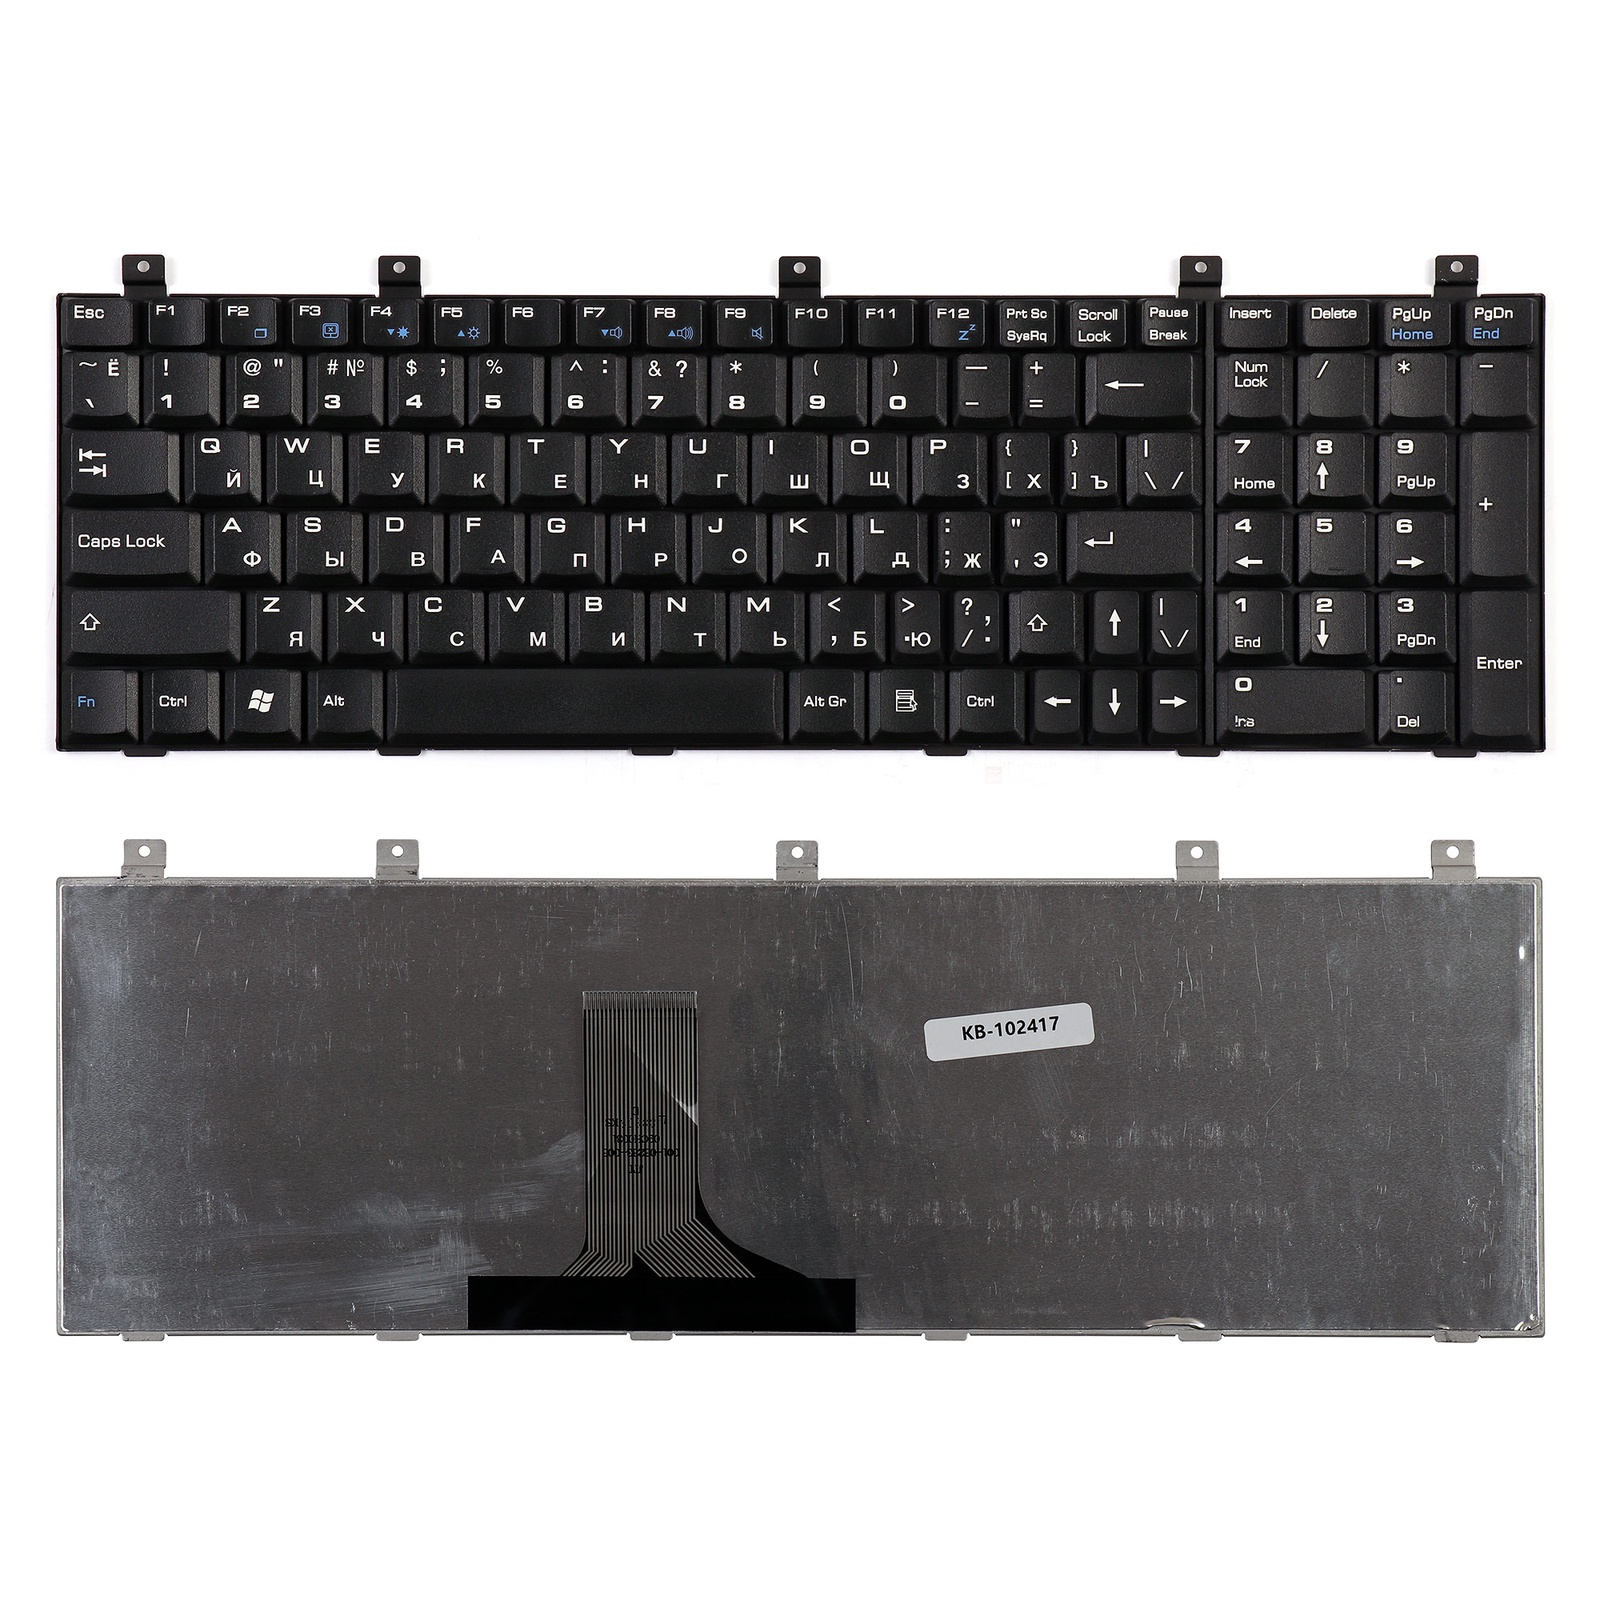 Клавиатура TopOn Toshiba Satellite P100, M60 Series. Плоский Enter. Без рамки. PN: MP-07A56CU-442, AEBD10I7015-RU, AEBD10IU011-US, KB-102417, черный pa3479 replacement high capacity laptop battery of 10 8v 5200mah for toshiba pa3479u pa3479u1bas satellite p100 p105 6cell black